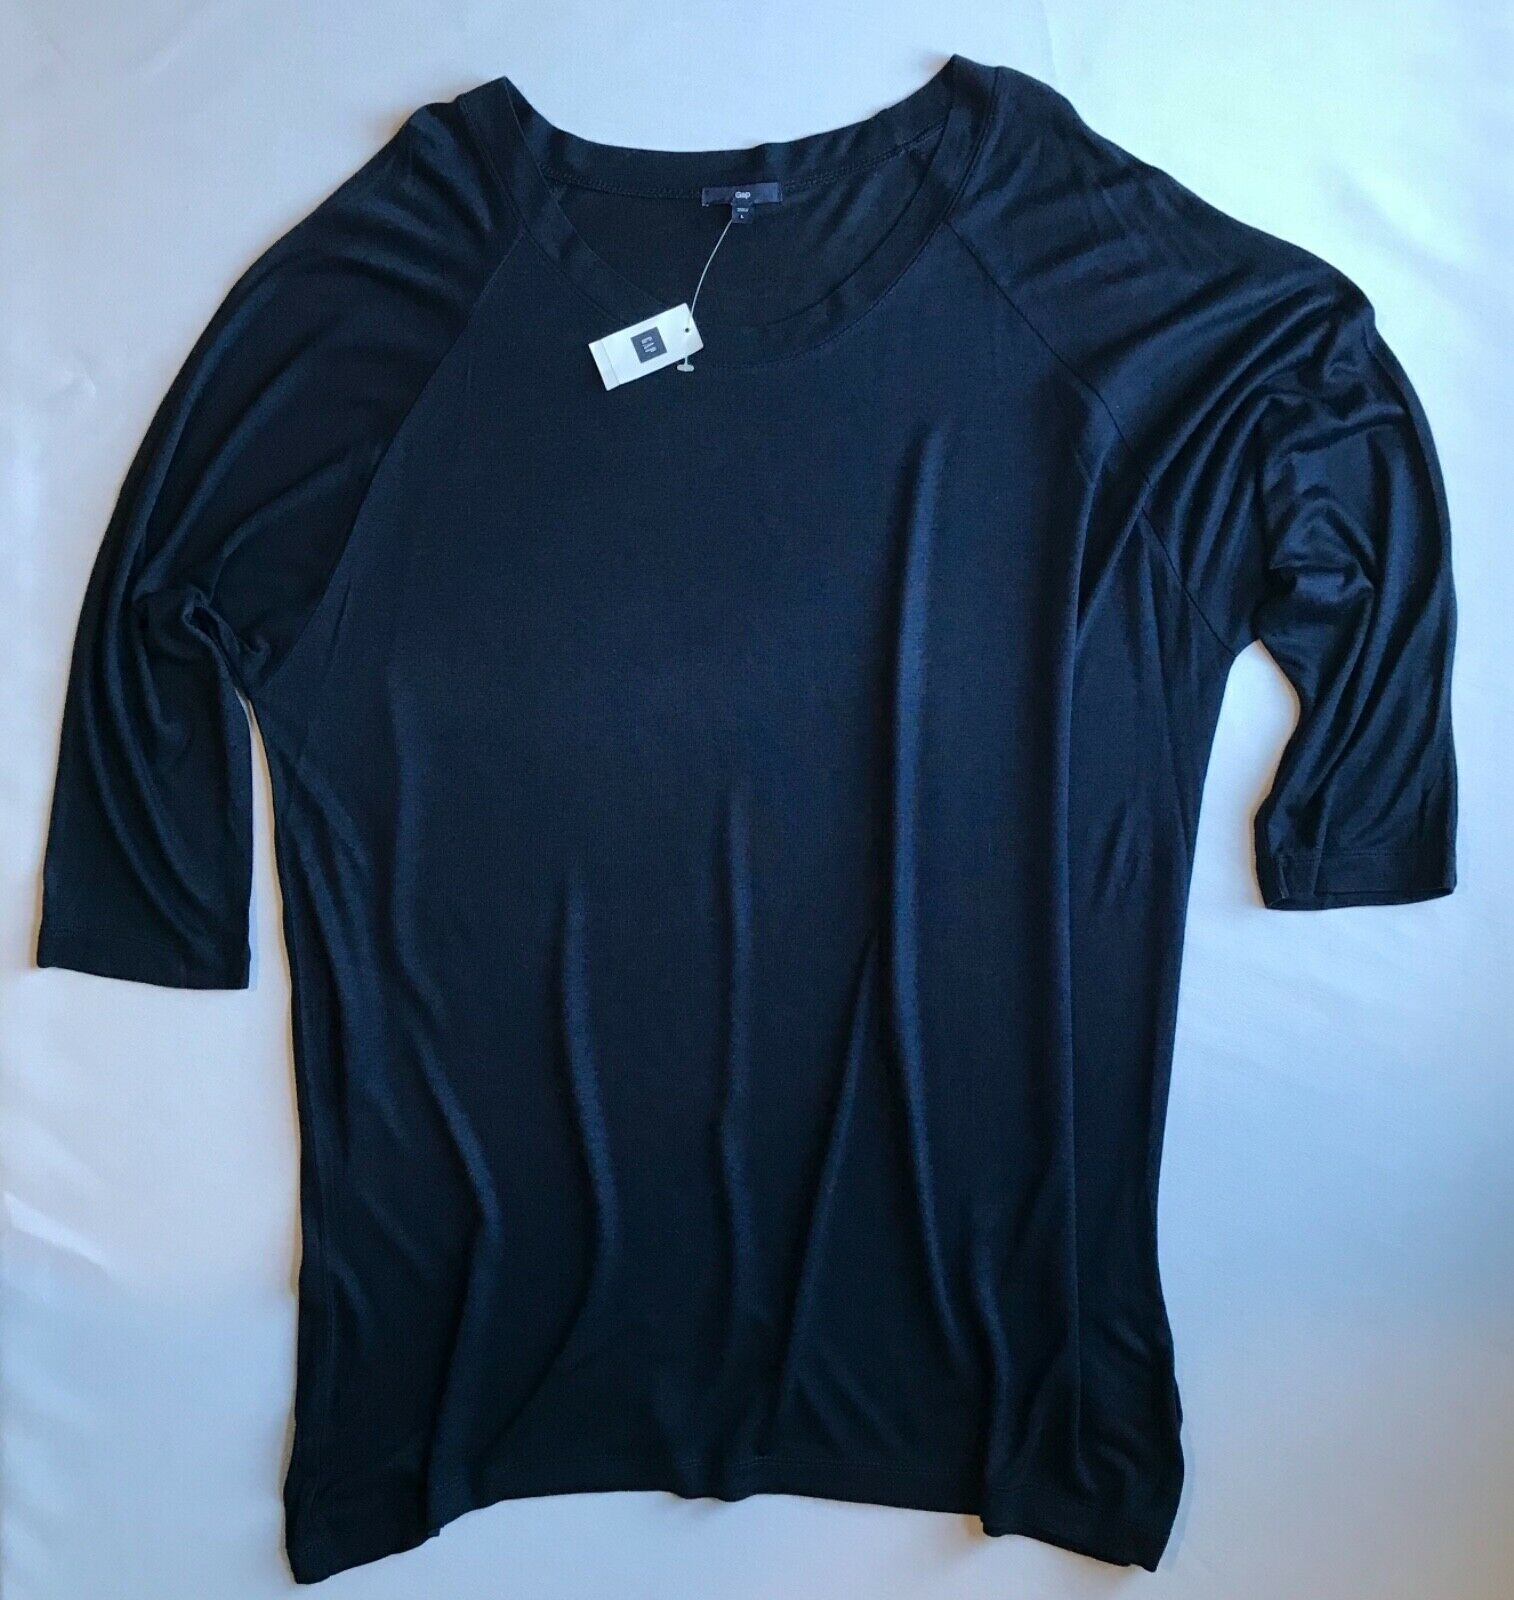 Primary image for Gap Crew Neck 3/4 Sleeve Top in Blue w/Dolman